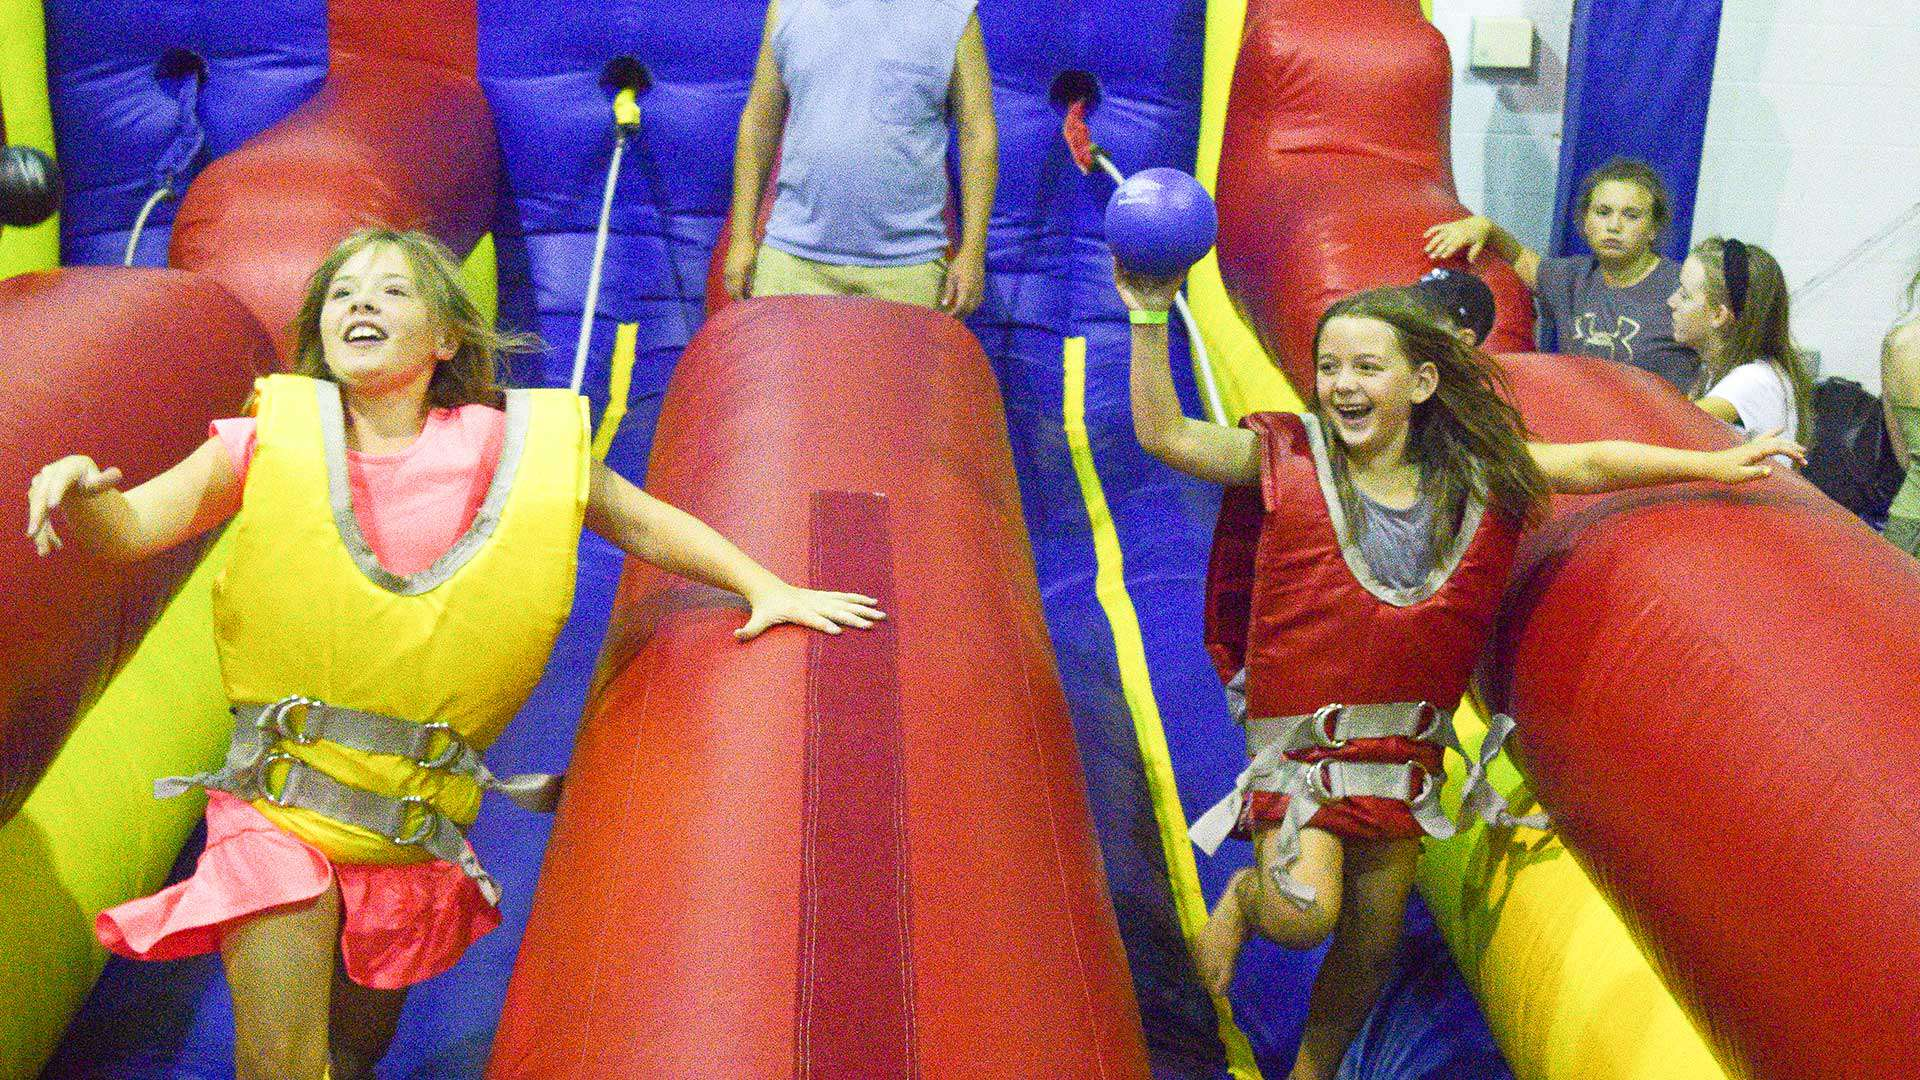 Two girls on inflatable bounce house